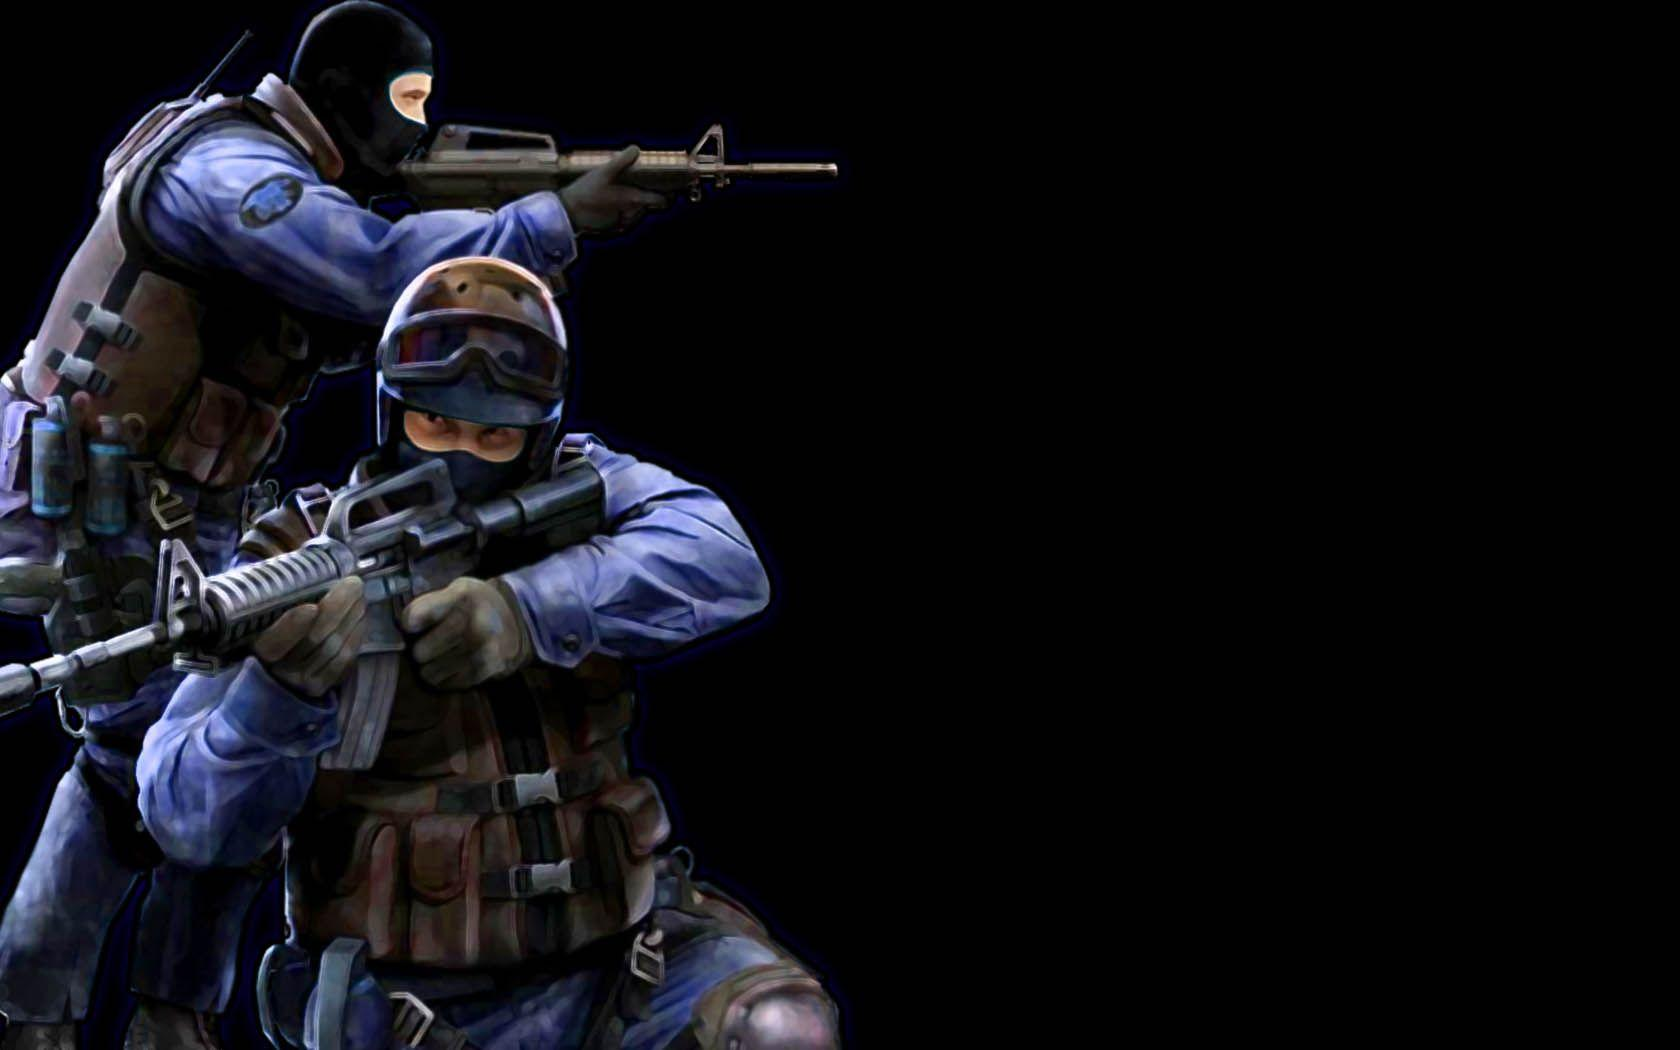 Counter-Strike High Resolution HD Wallpapers - All HD Wallpapers